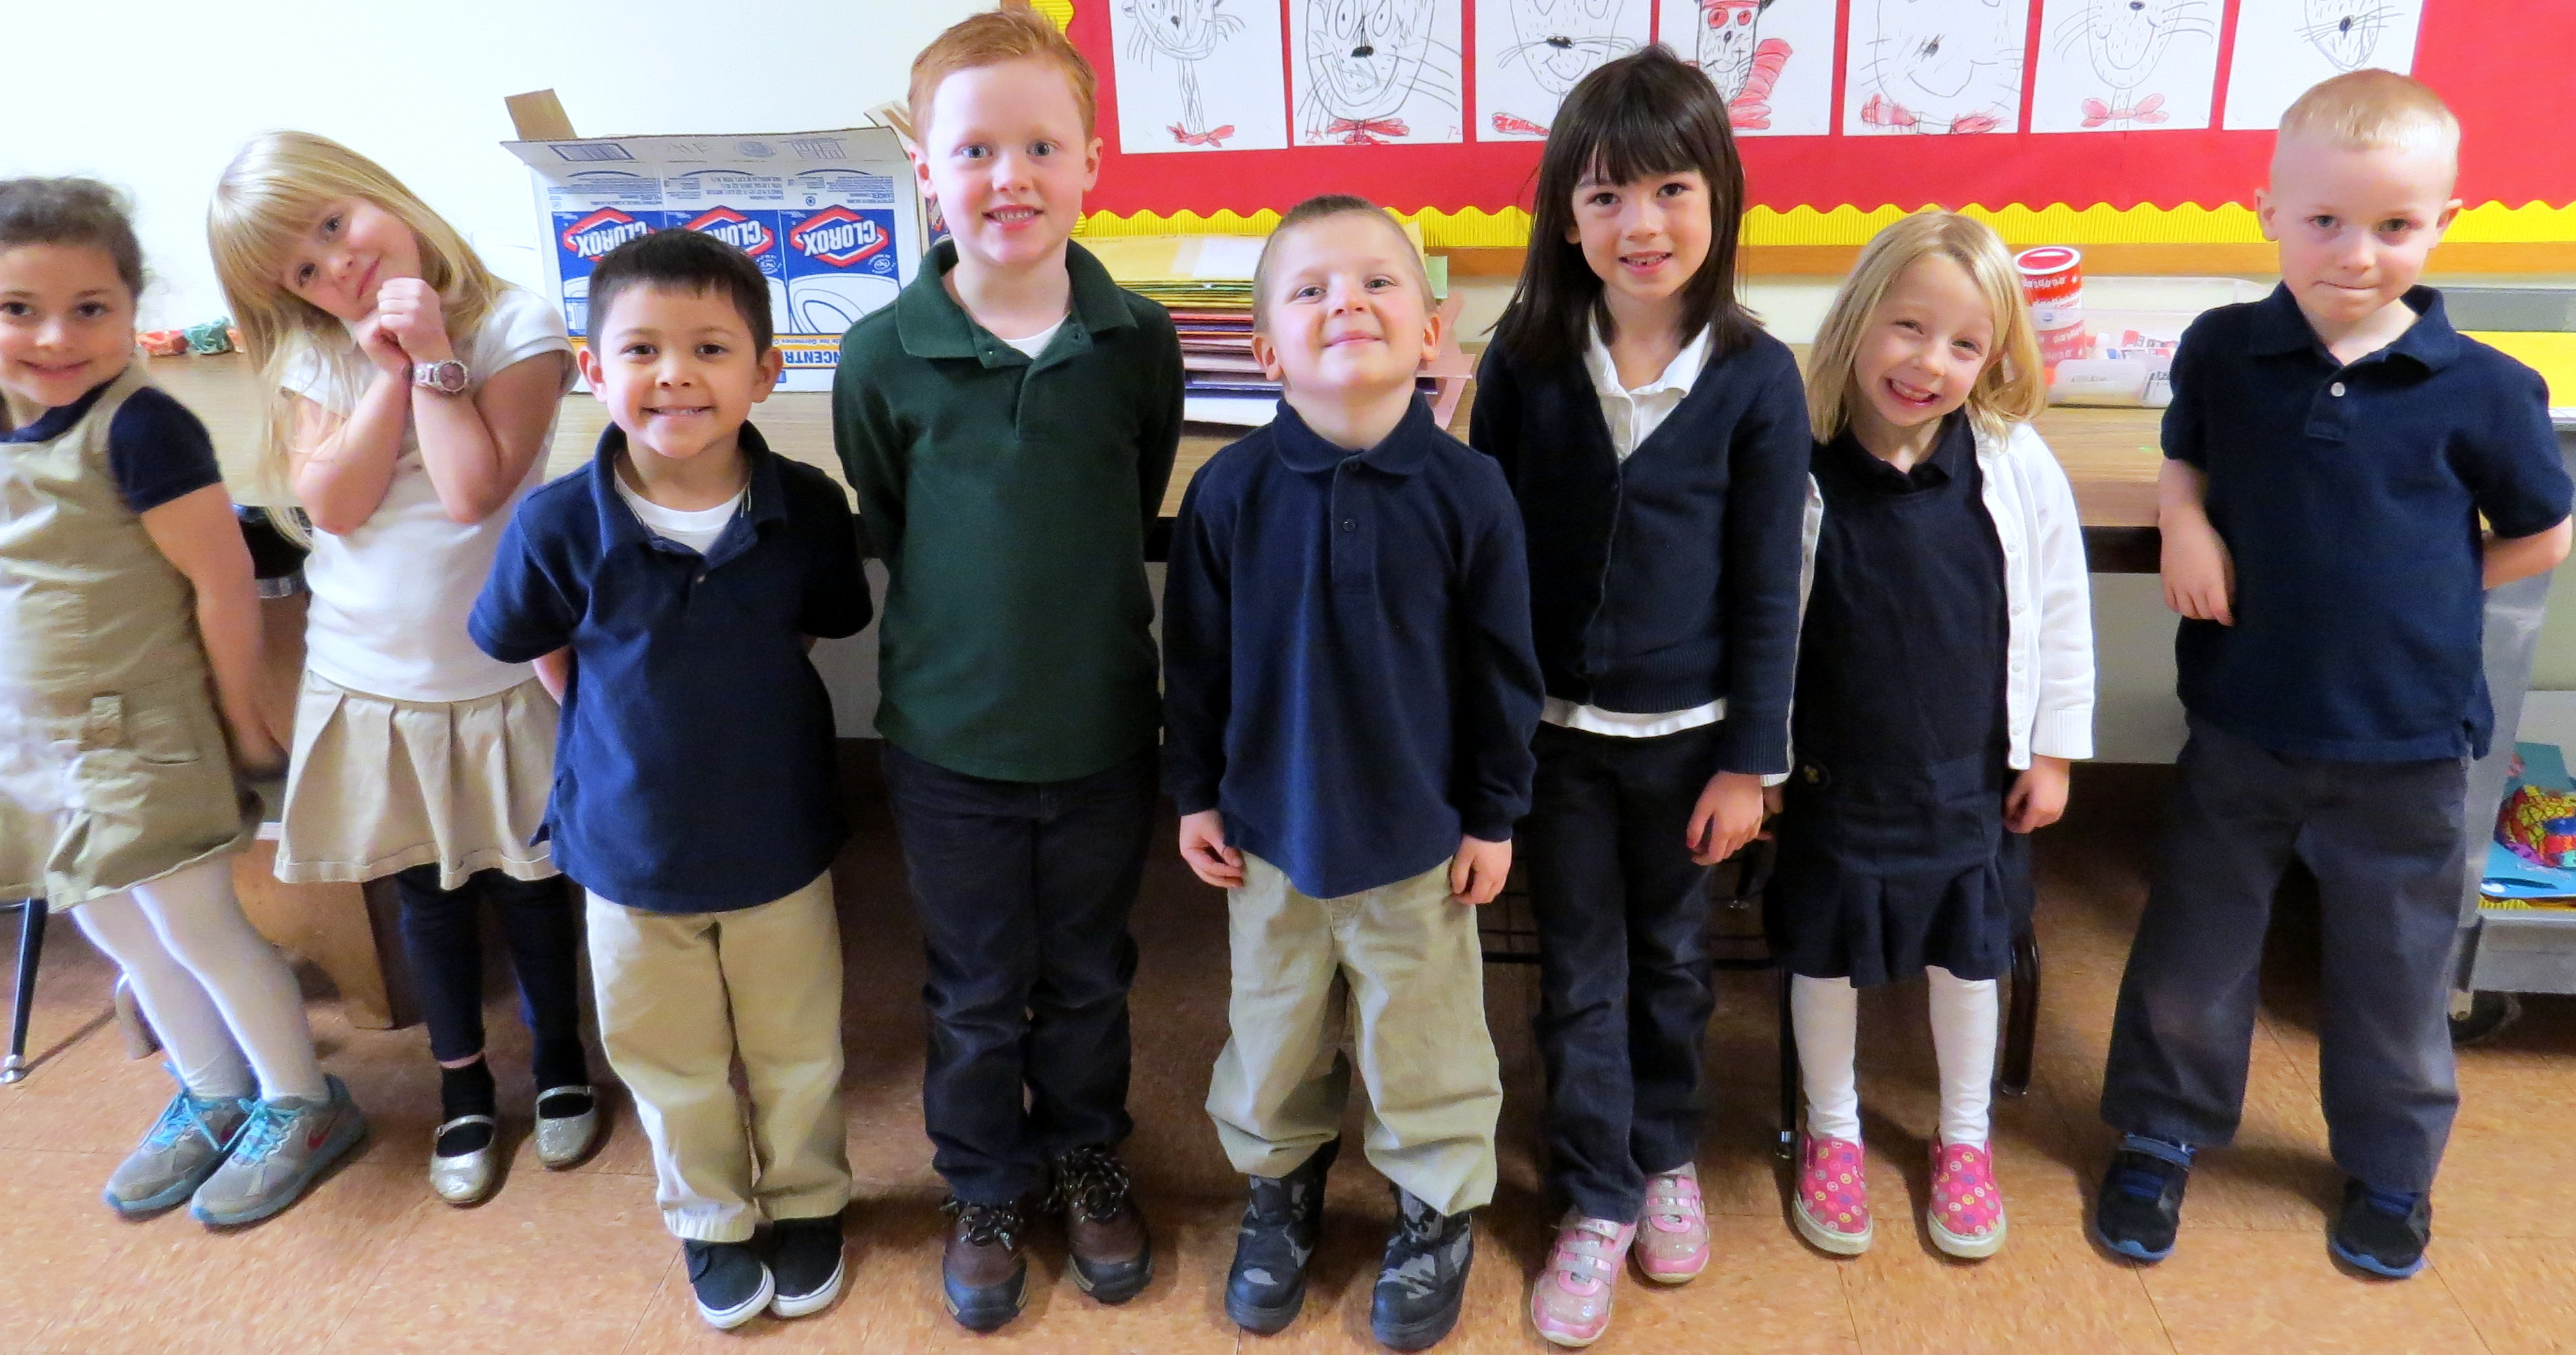 Smiling kids wearing school uniforms